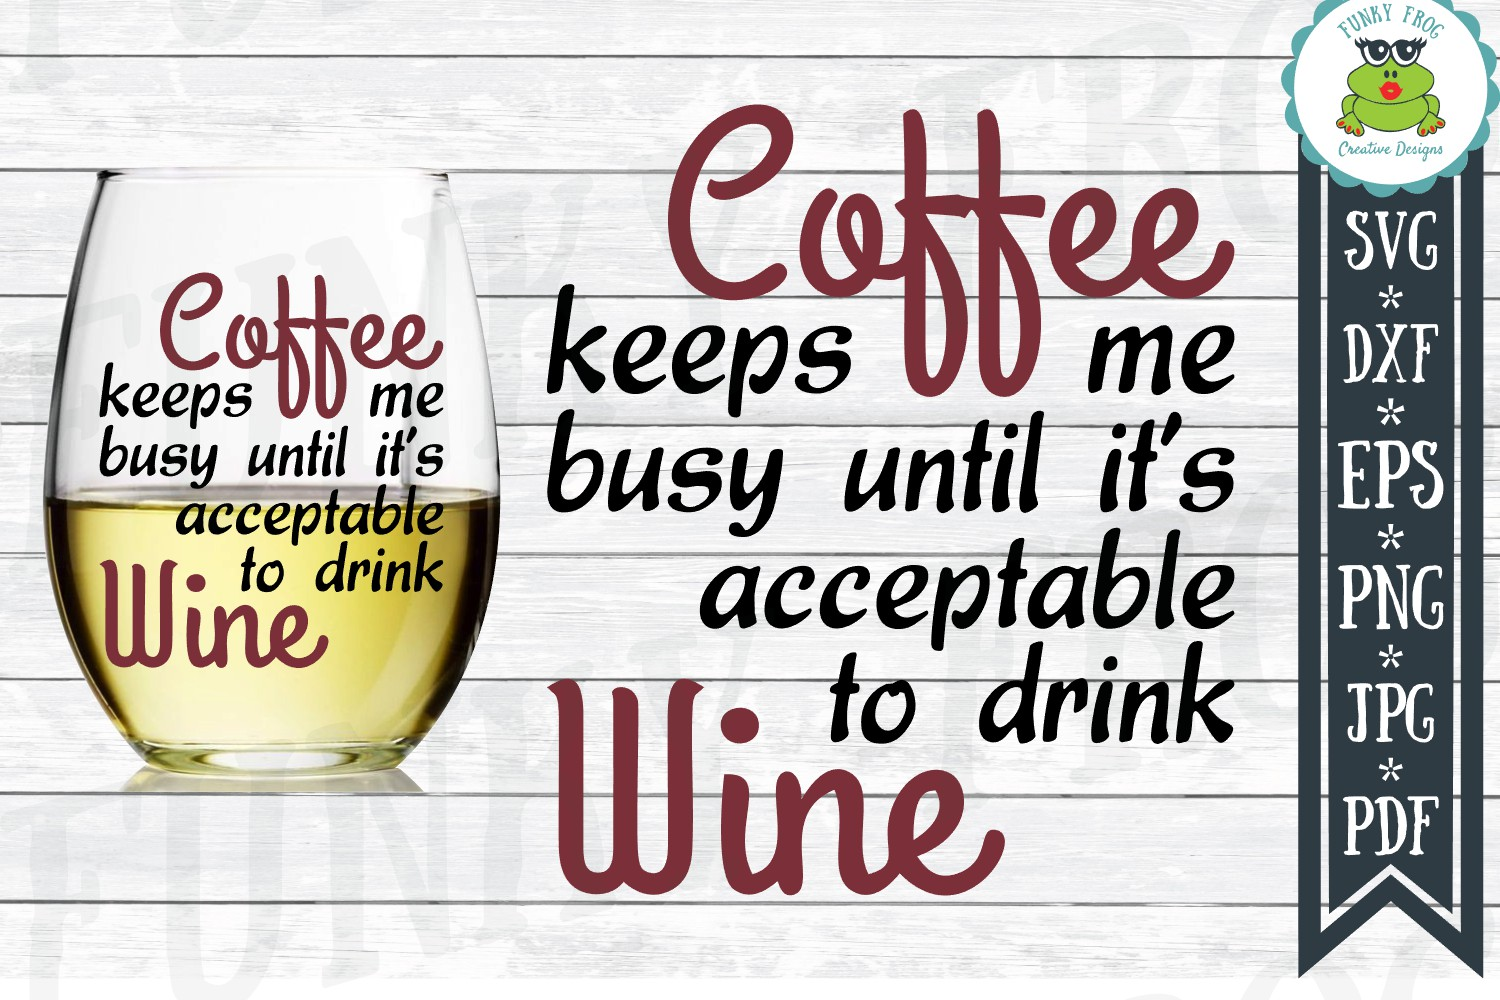 Coffee Keeps Me Busy Until It's Acceptable To Drink Wine SVG example image 1